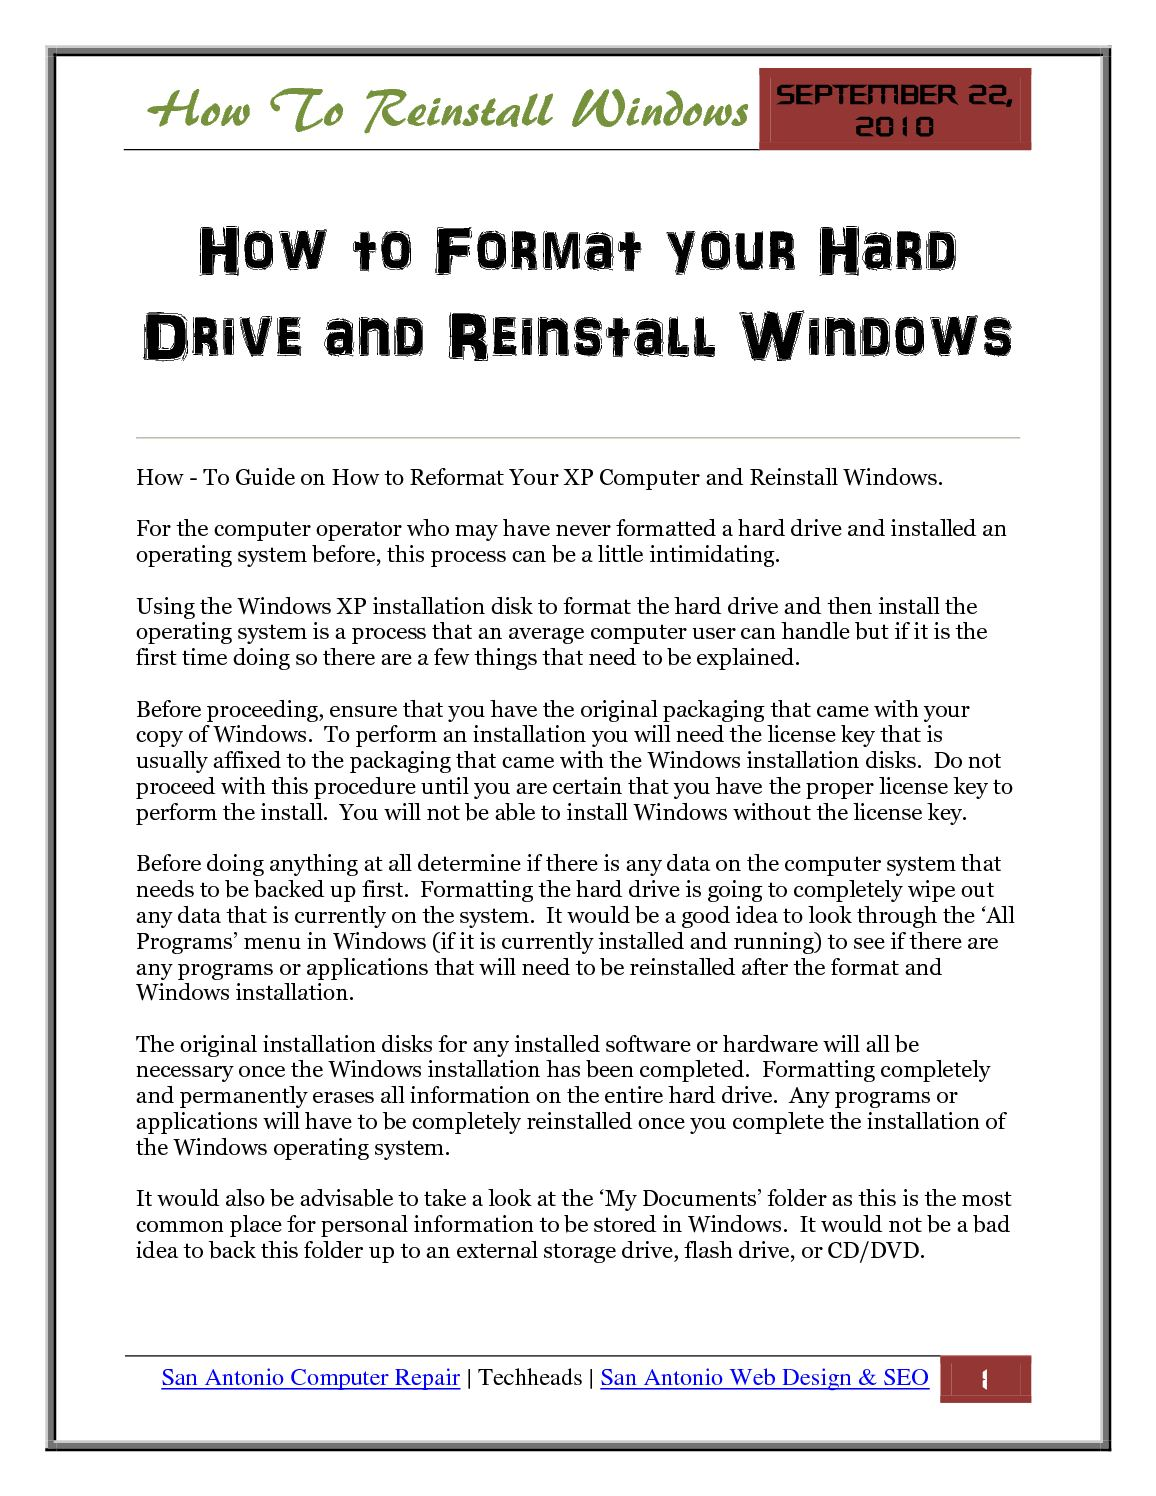 reinstall windows without cd key